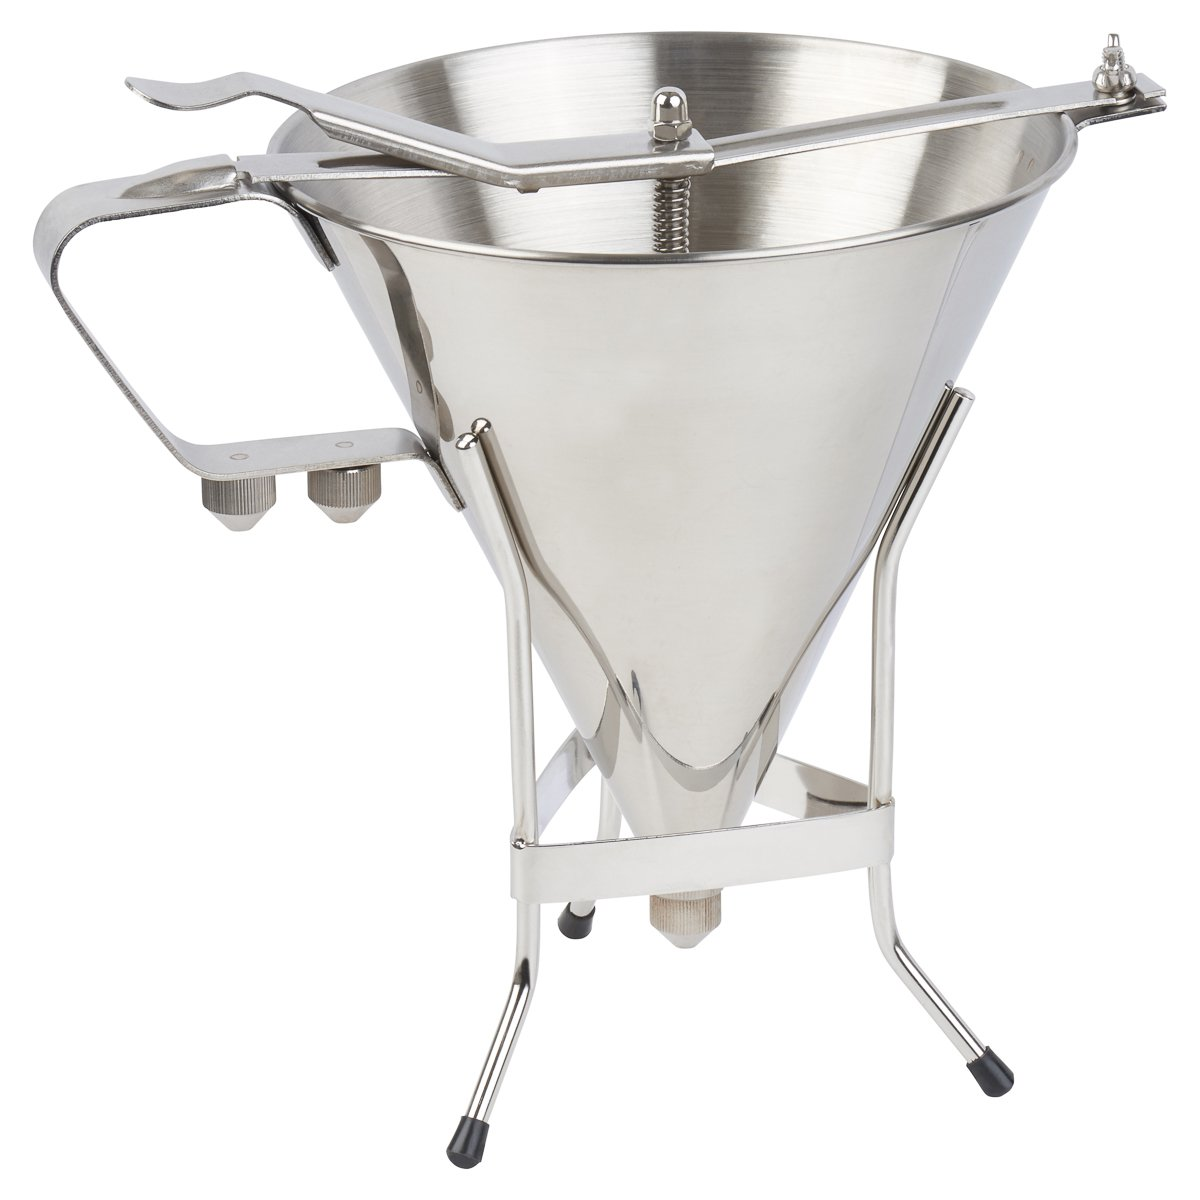 The #1 Professional Confectionery FUNNEL + sturdy STAND with 3 NOZZLES - Premium commercial quality stainless steel - 7-1/2 inch Diameter - Every chef's best friend- By The Kitchen Panda